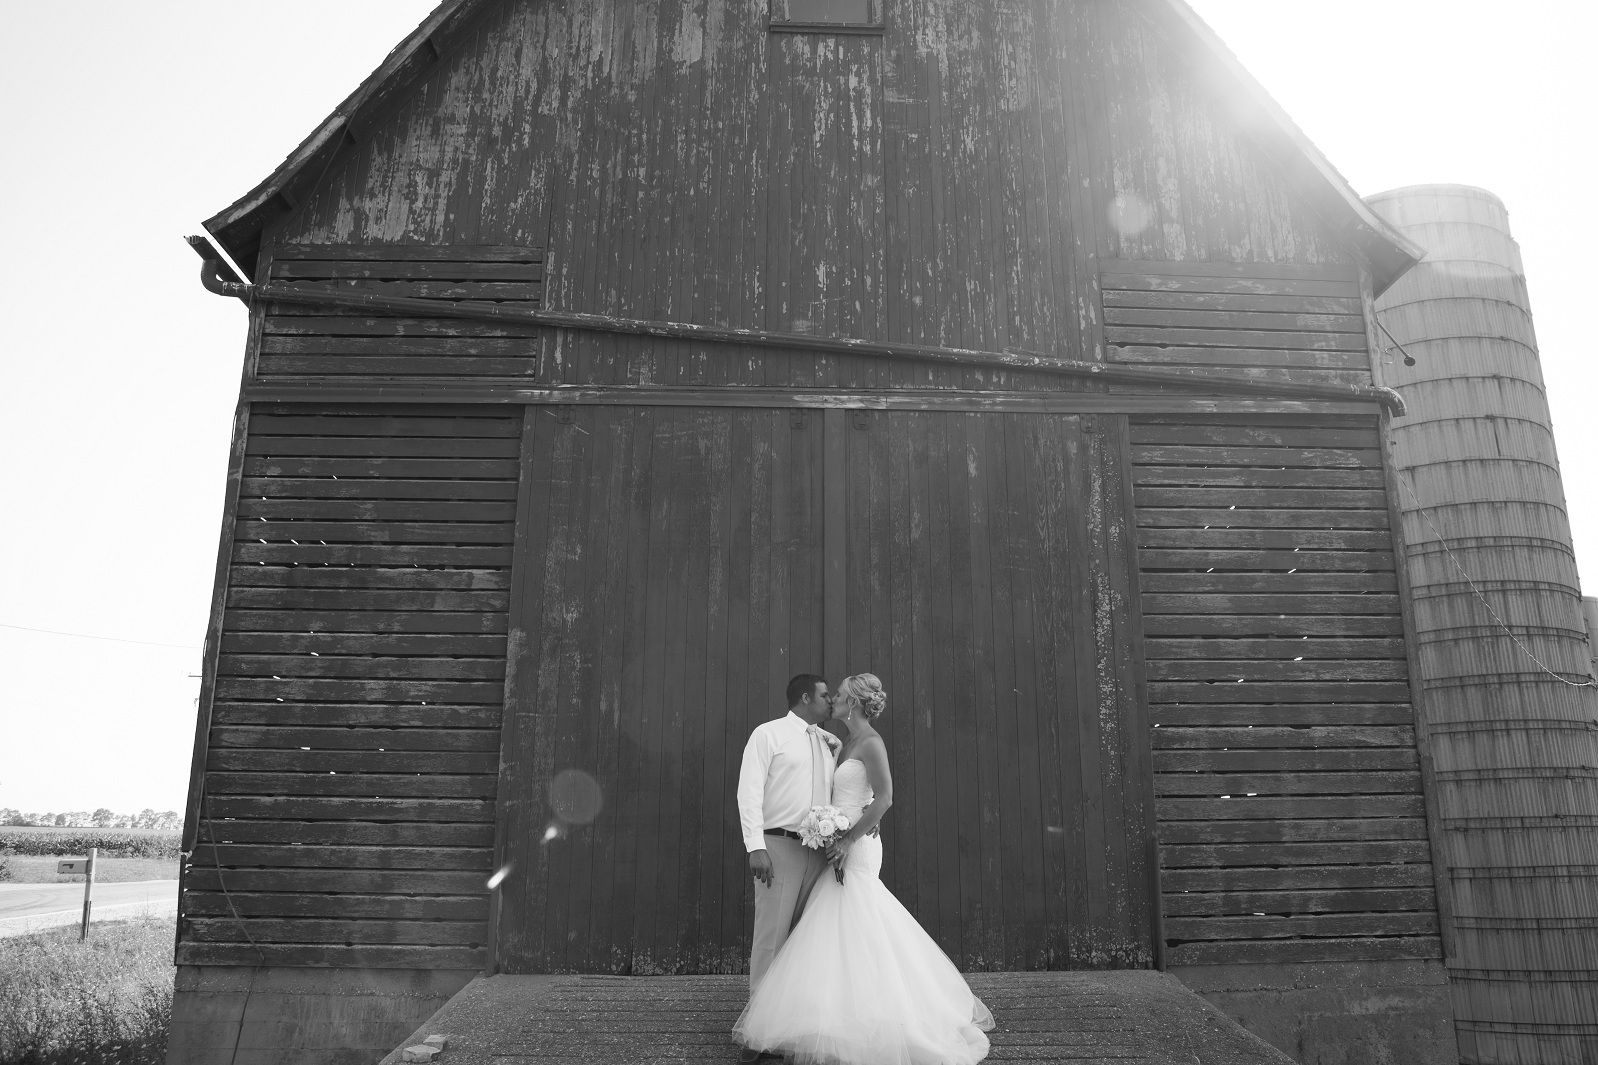 Rustic Northern Illinois Farm Wedding - Rustic Wedding Chic